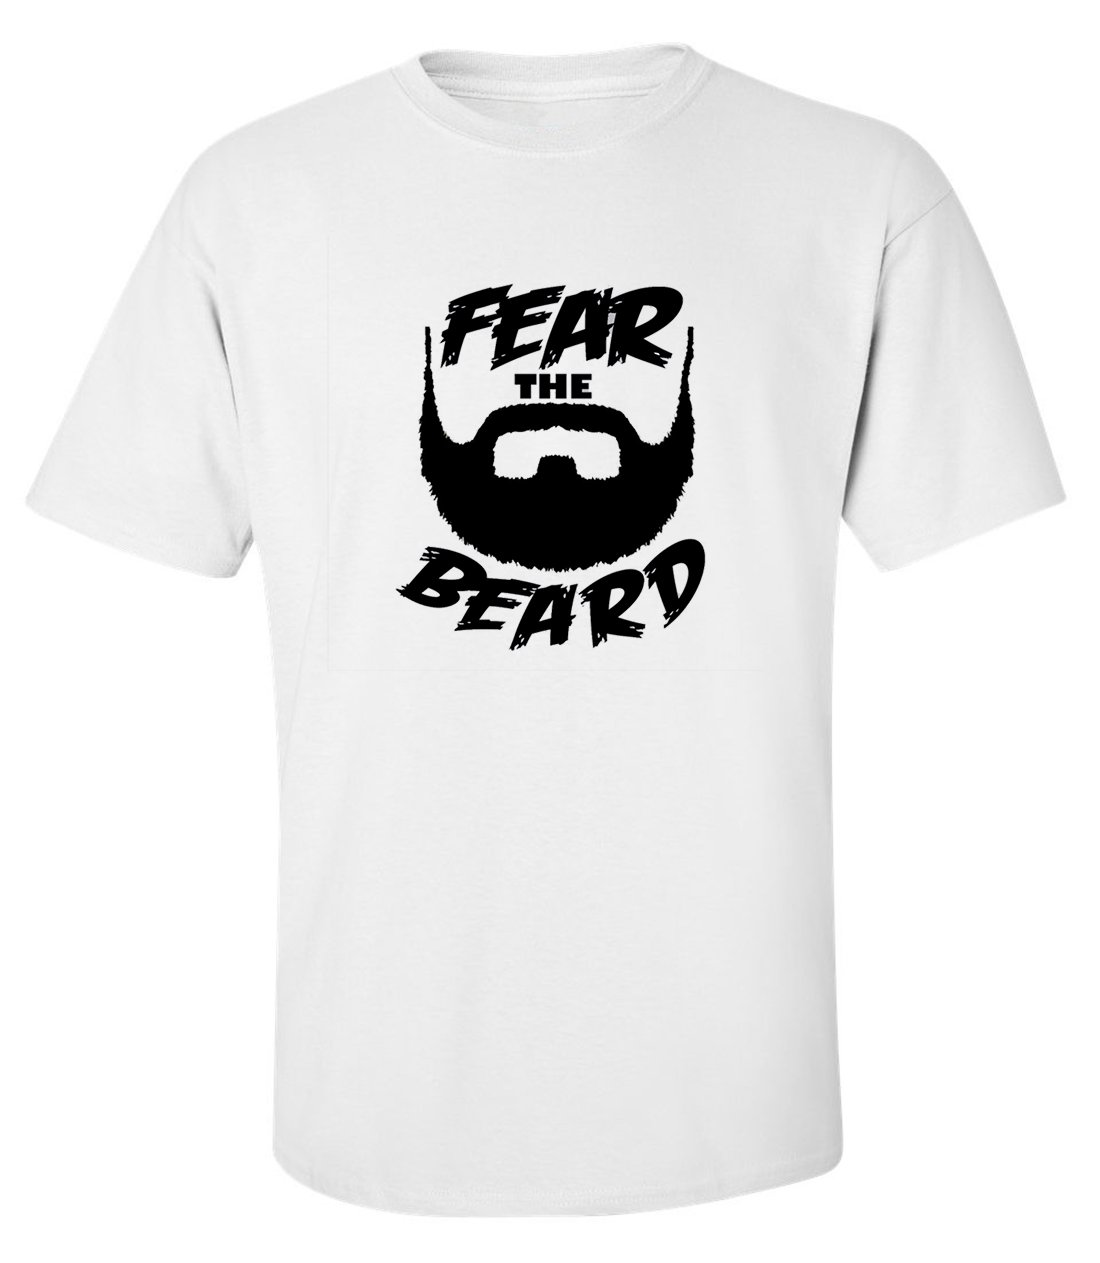 Fear the beard funny slogan men printed cotton white t-shirt size L